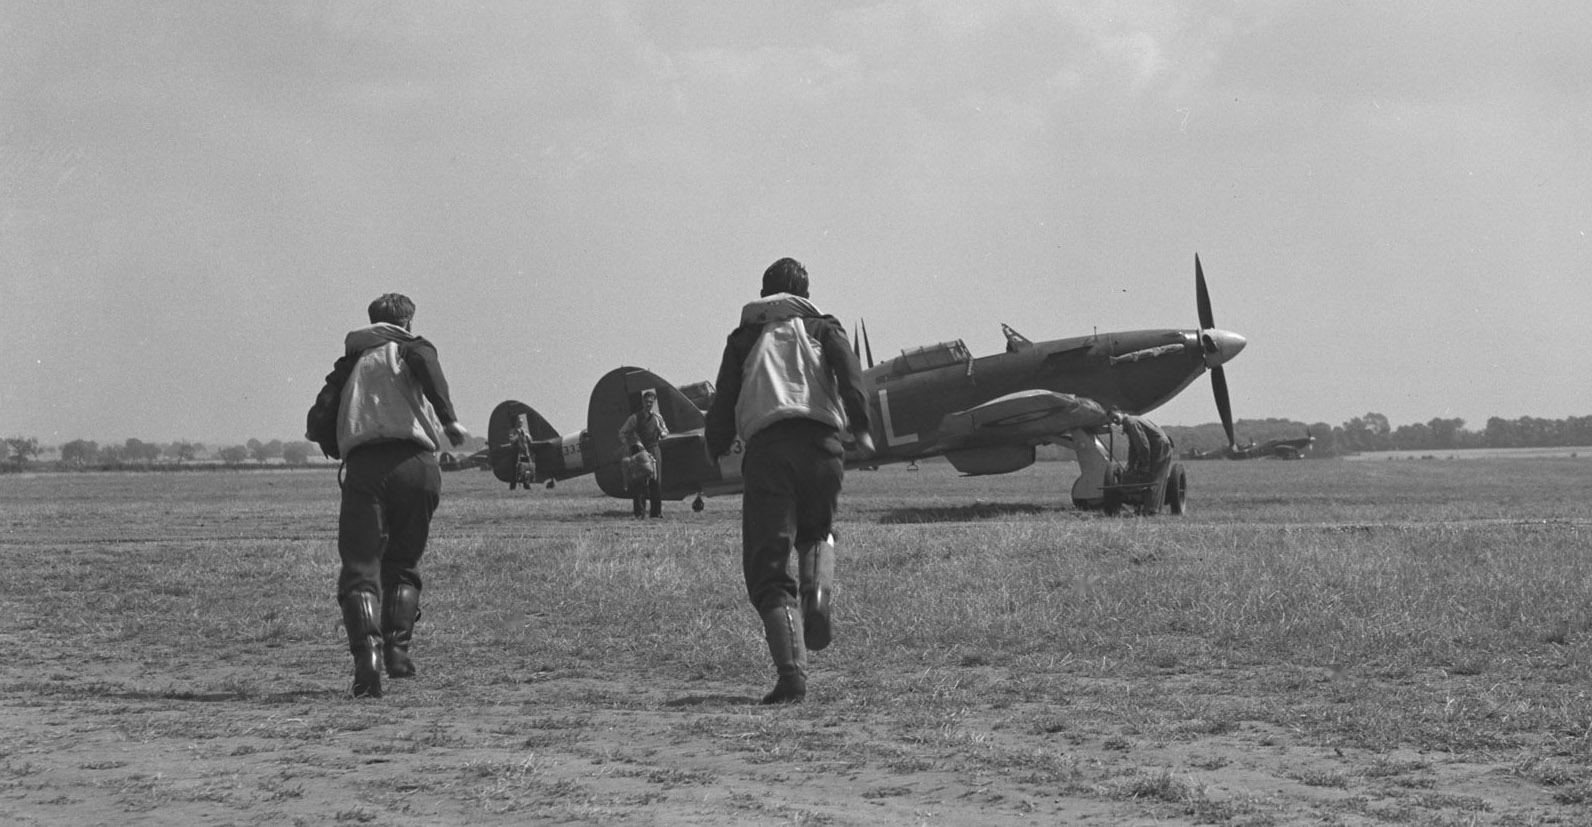 Pilots from 401 Squadron run to their Hurricane aircraft in this undated photograph. Groundcrew are waiting to help the pilots put on their parachutes and get into the aircraft. The Hurricanes could skim off the ground three minutes after an alarm was sounded. PHOTO: DND Archives, PL-4484